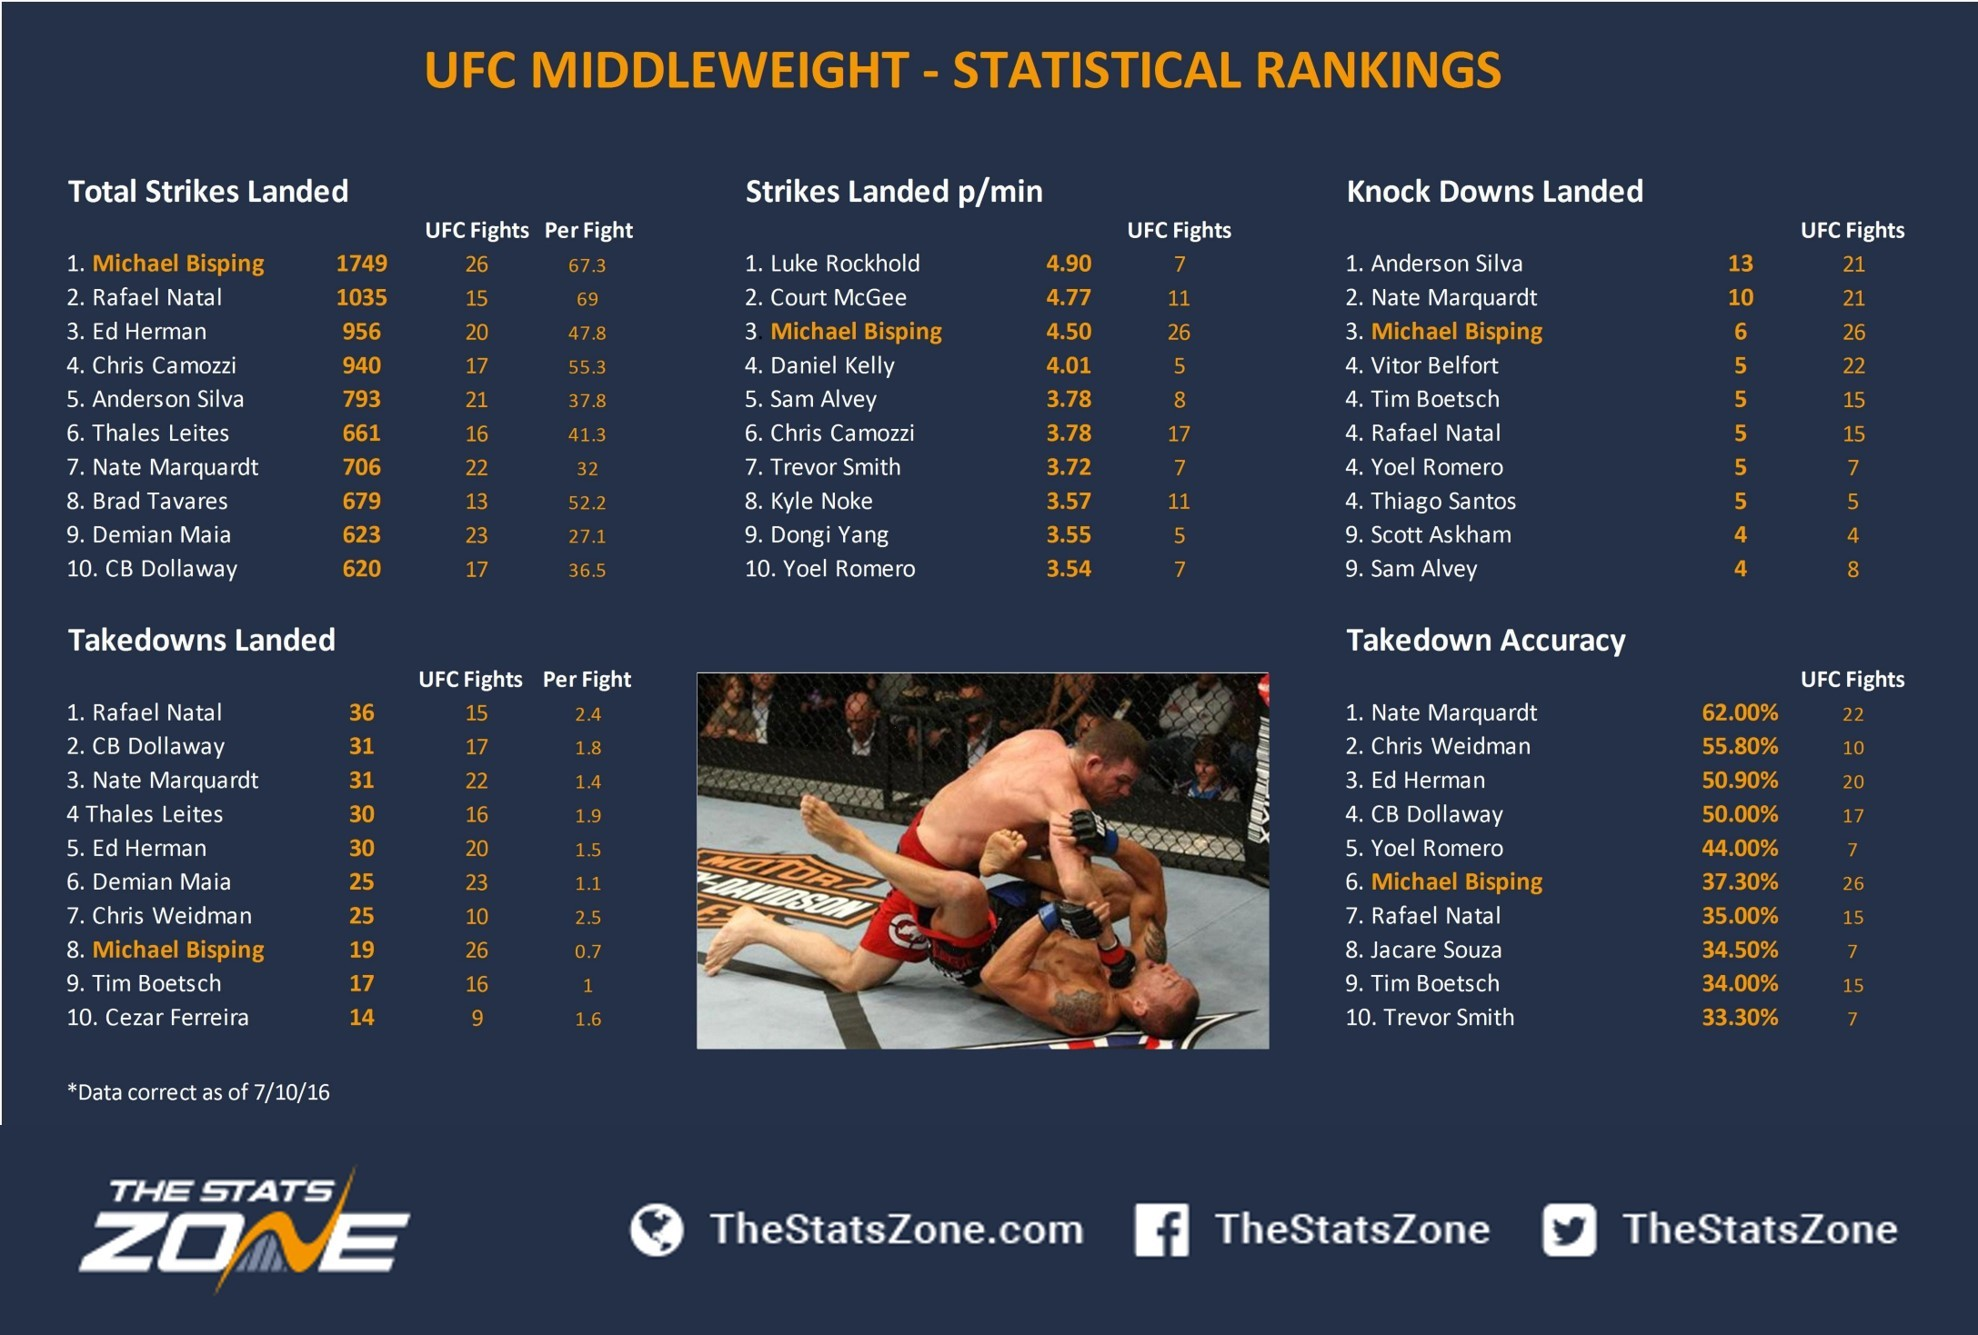 *These stats correct as of: 7/10/16   *This data includes active UFC fighters only and based on a minimum of five fights   *Takedown statistics based on a minimum of 20 attempts